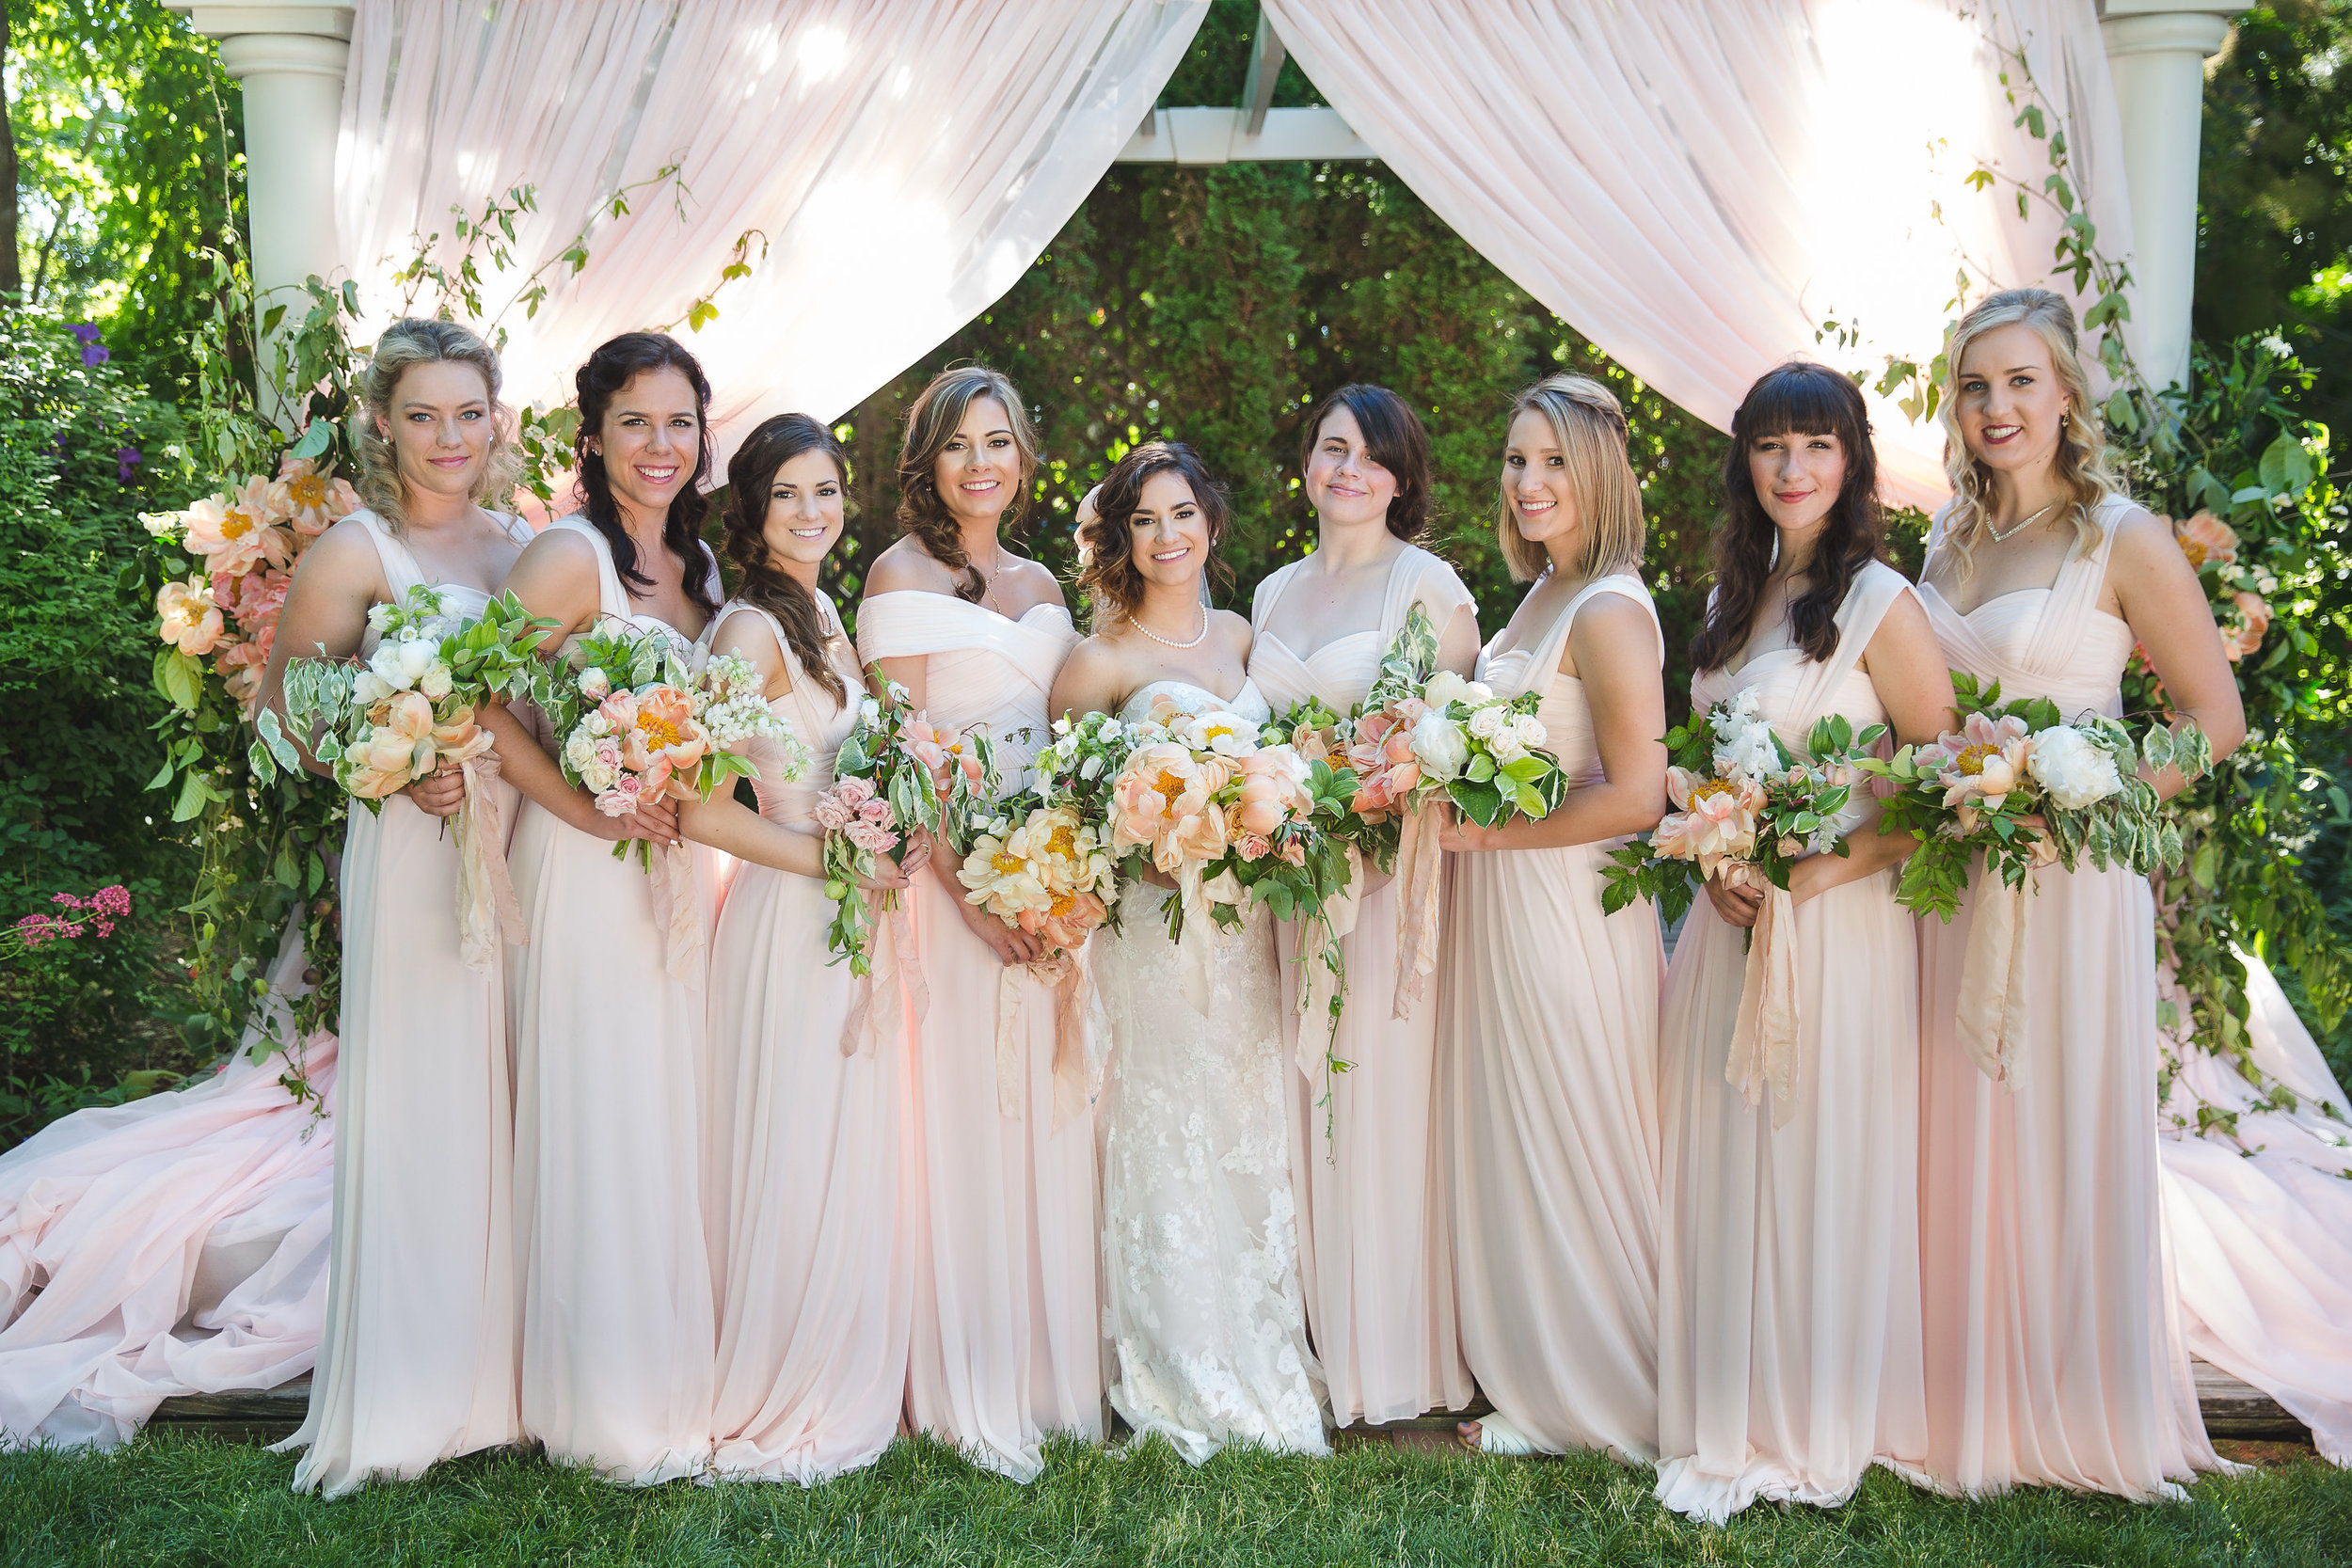 Makayla and Mike French Garden Wedding, Ira and Lucy Wedding Coordination and Design, Let It Shine Photography, Lemon Blossom Designs Floral Design